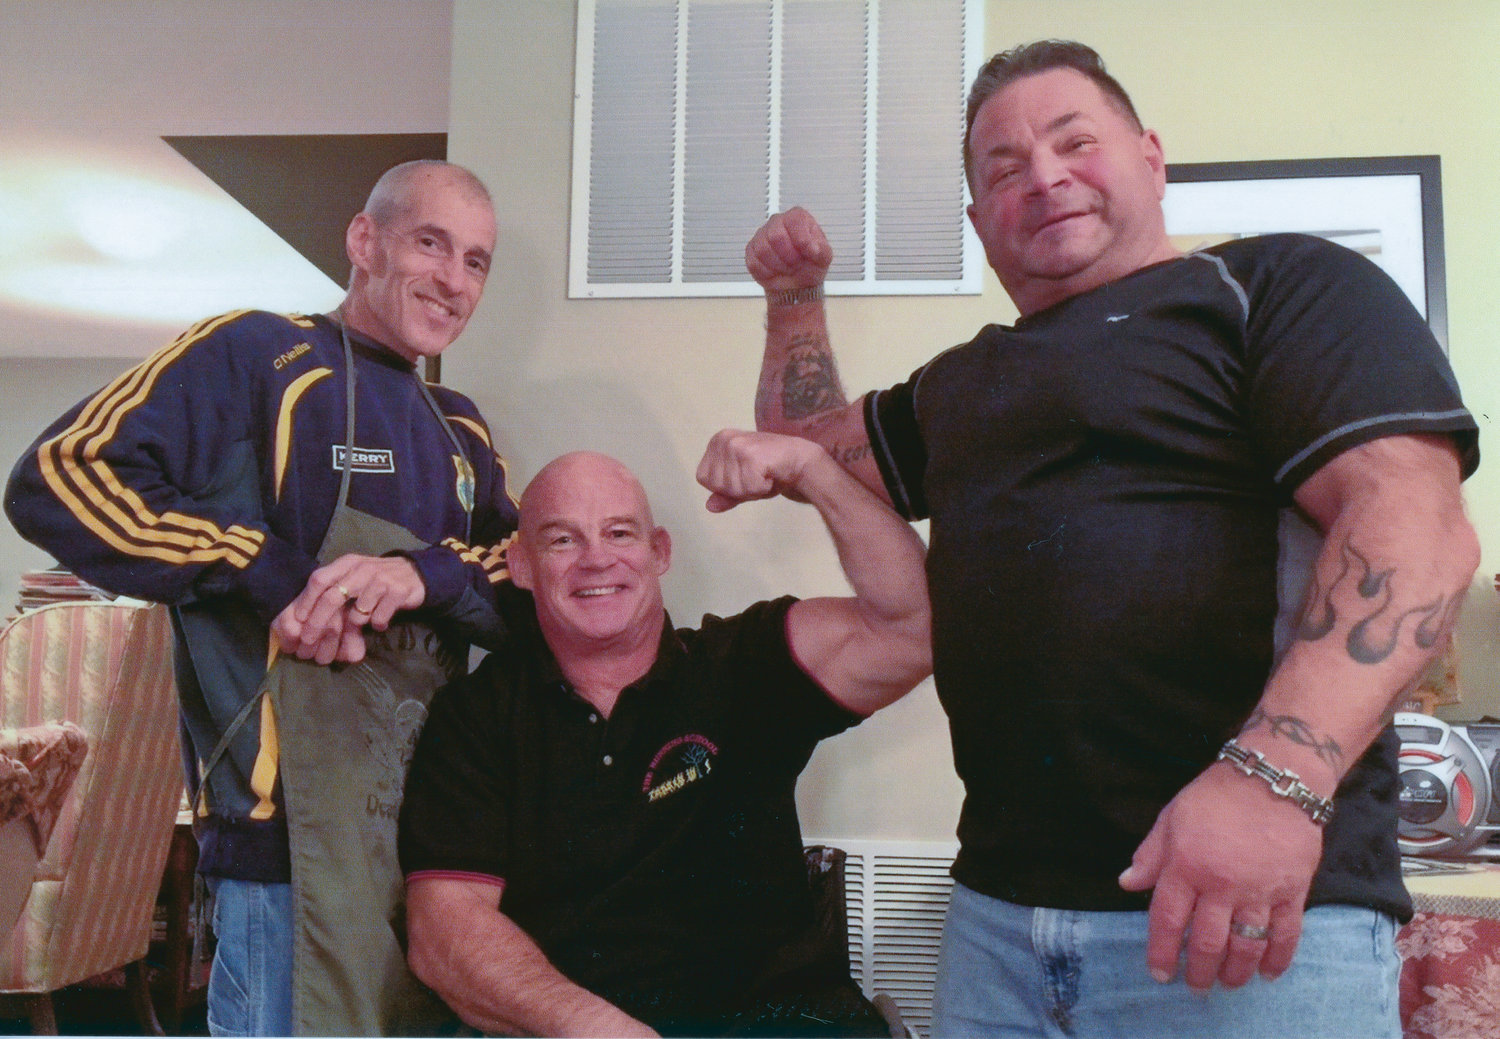 Leistner, left, with wheelchair racer Peter Hawkins, center, and professional weightlifter Pat Susco.